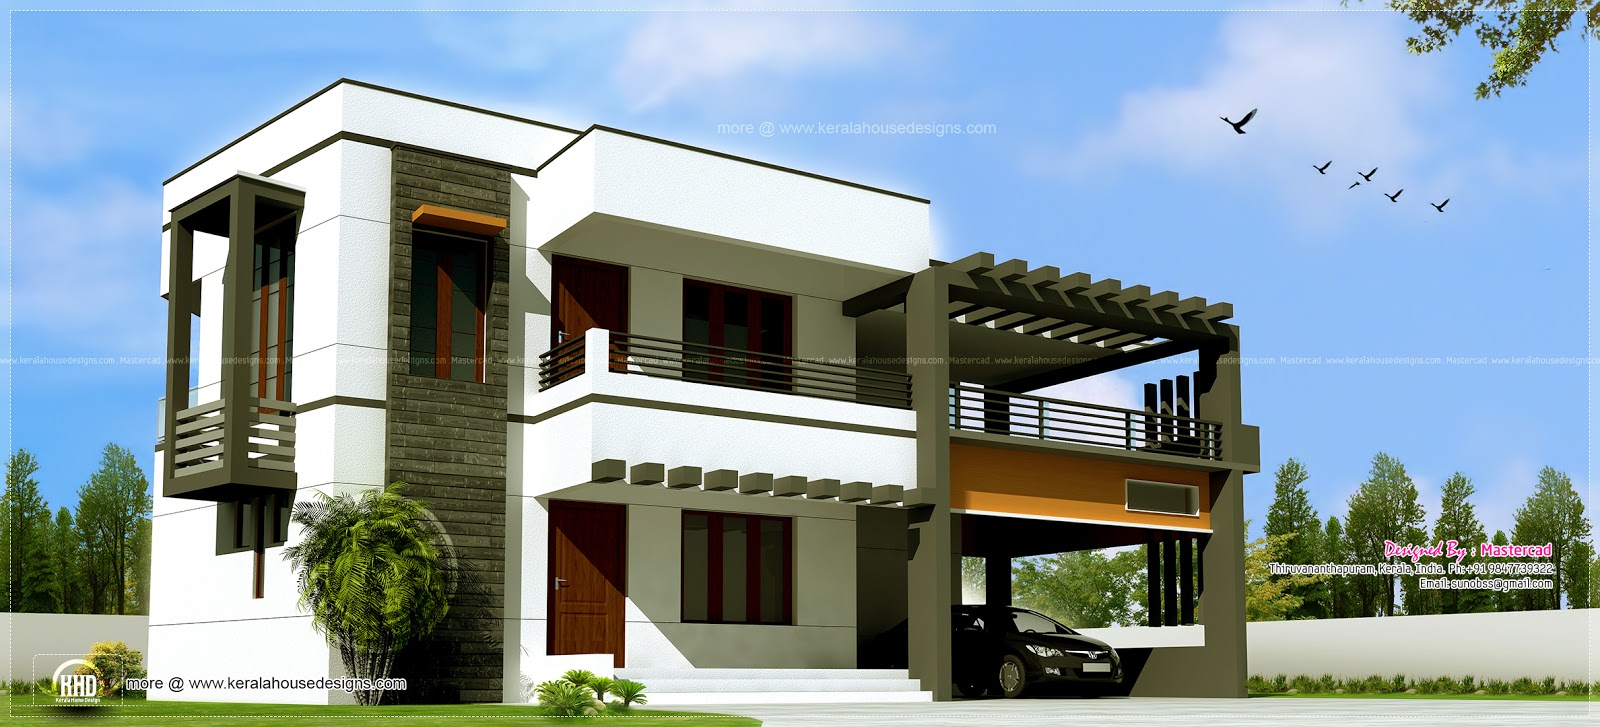 3012 contemporary house home kerala plans 200 yards house design